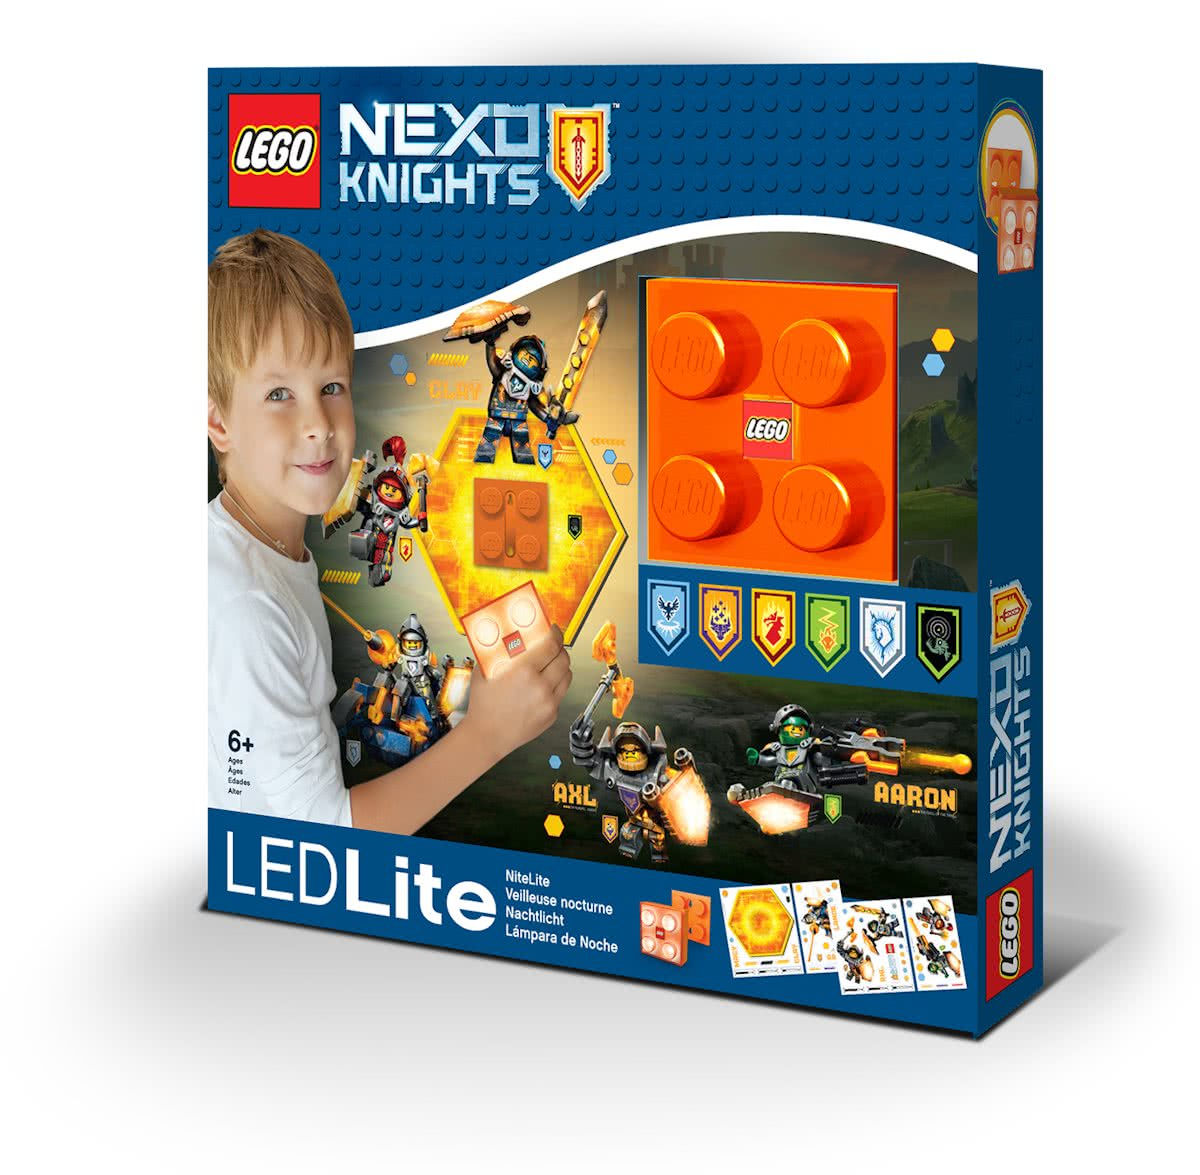 LEGO NI7 Nexo Knight LED Wandlamp